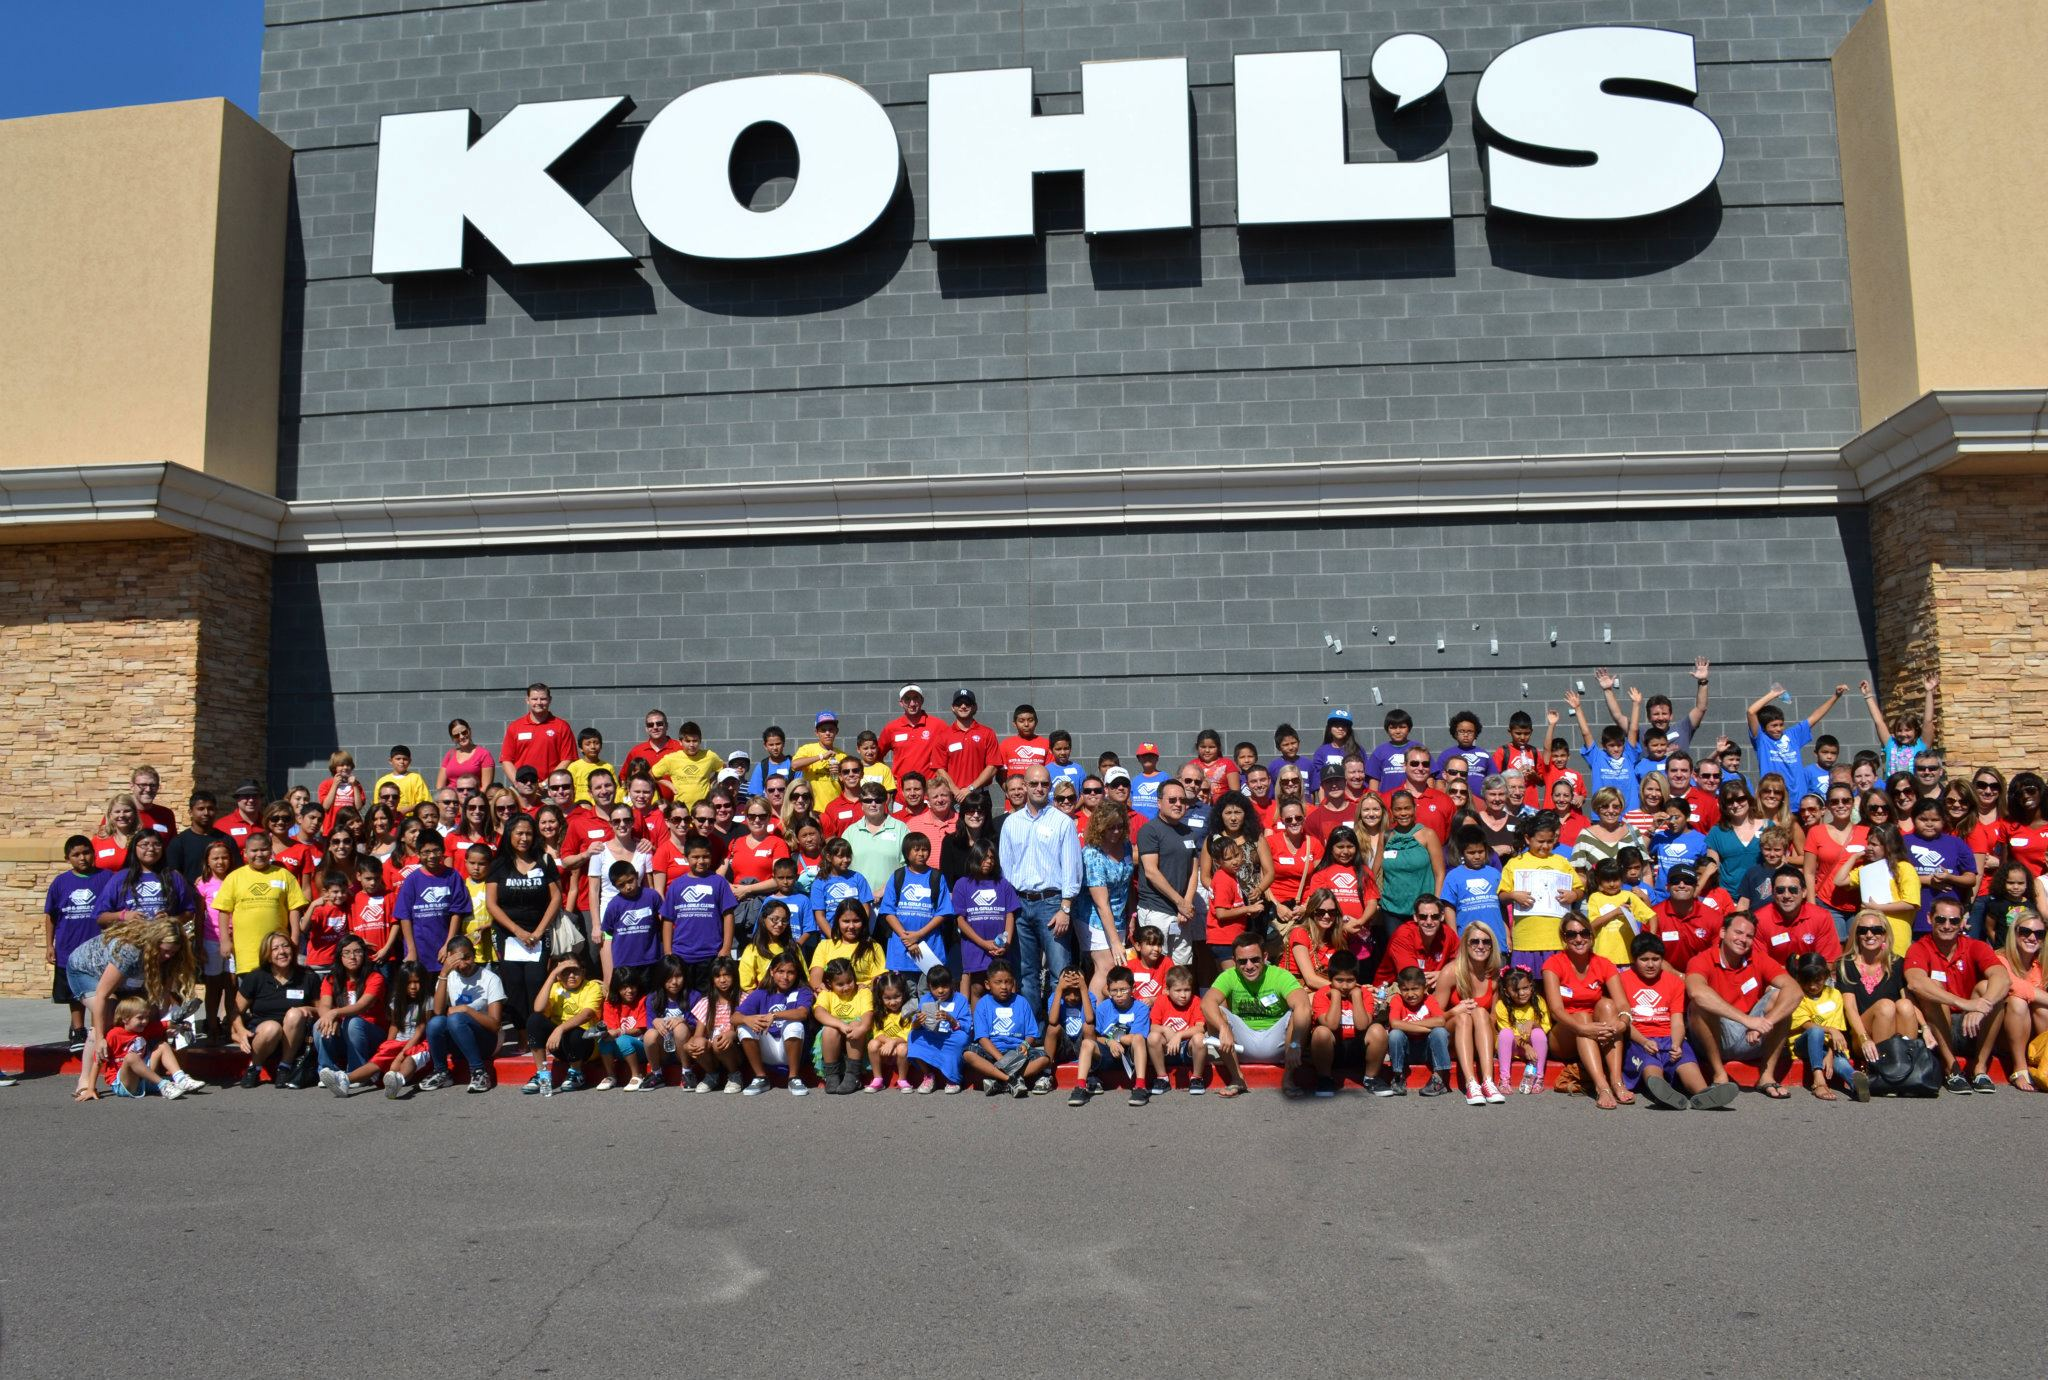 Kohl's gives $100 gift cards to 100 youth.